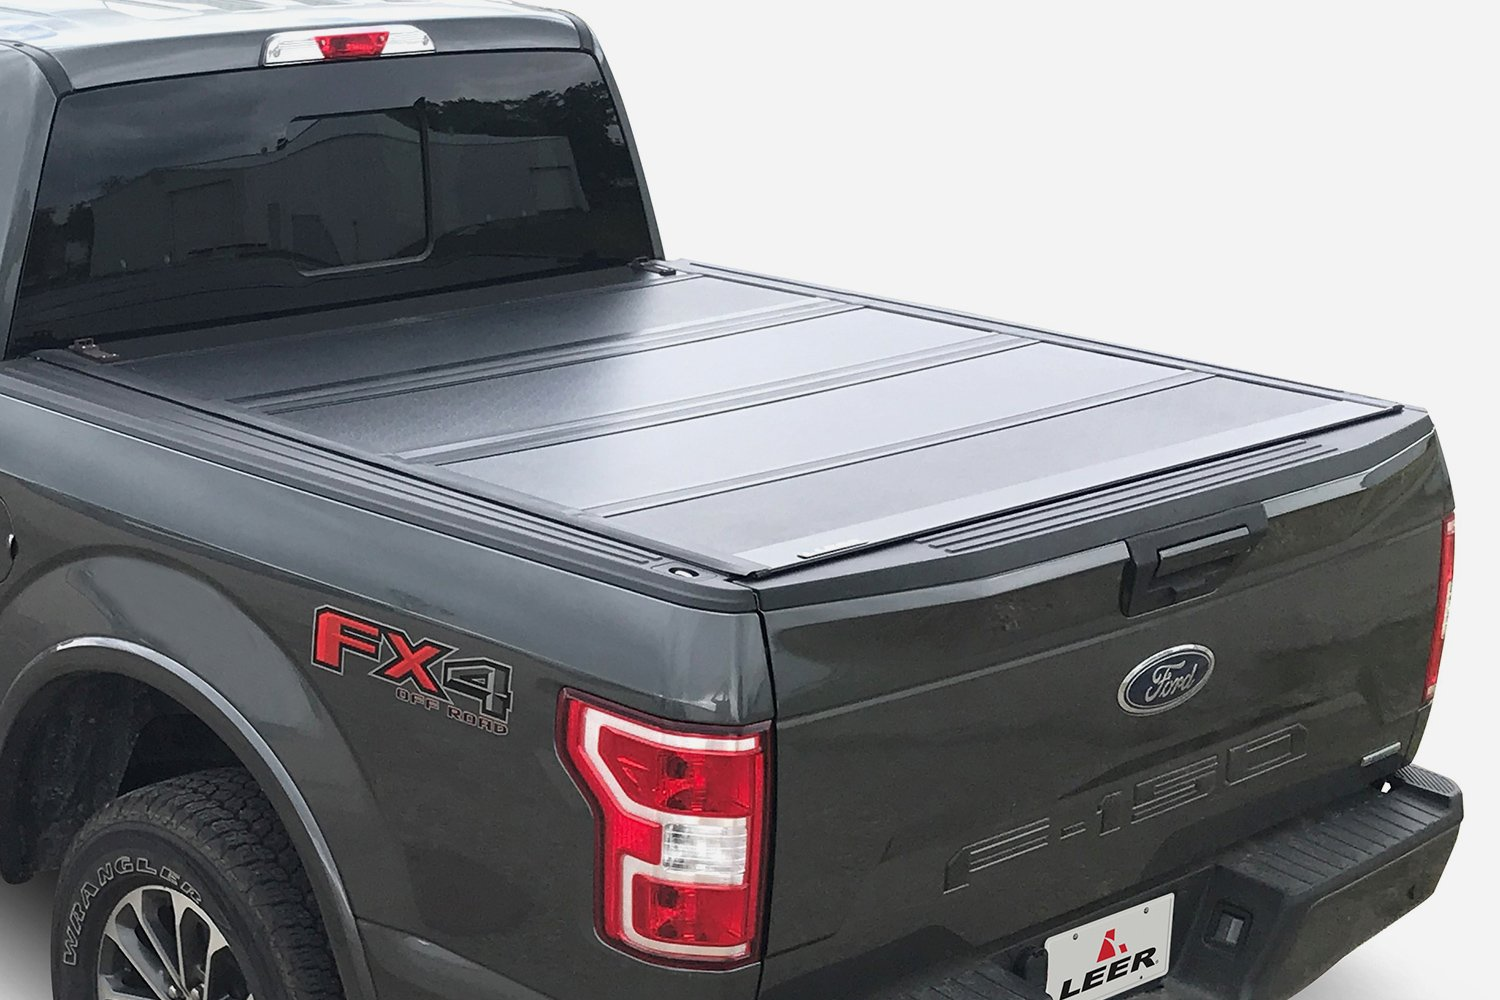 Leer Hf650m Hard Folding Tonneau Cover Read Reviews Free Shipping